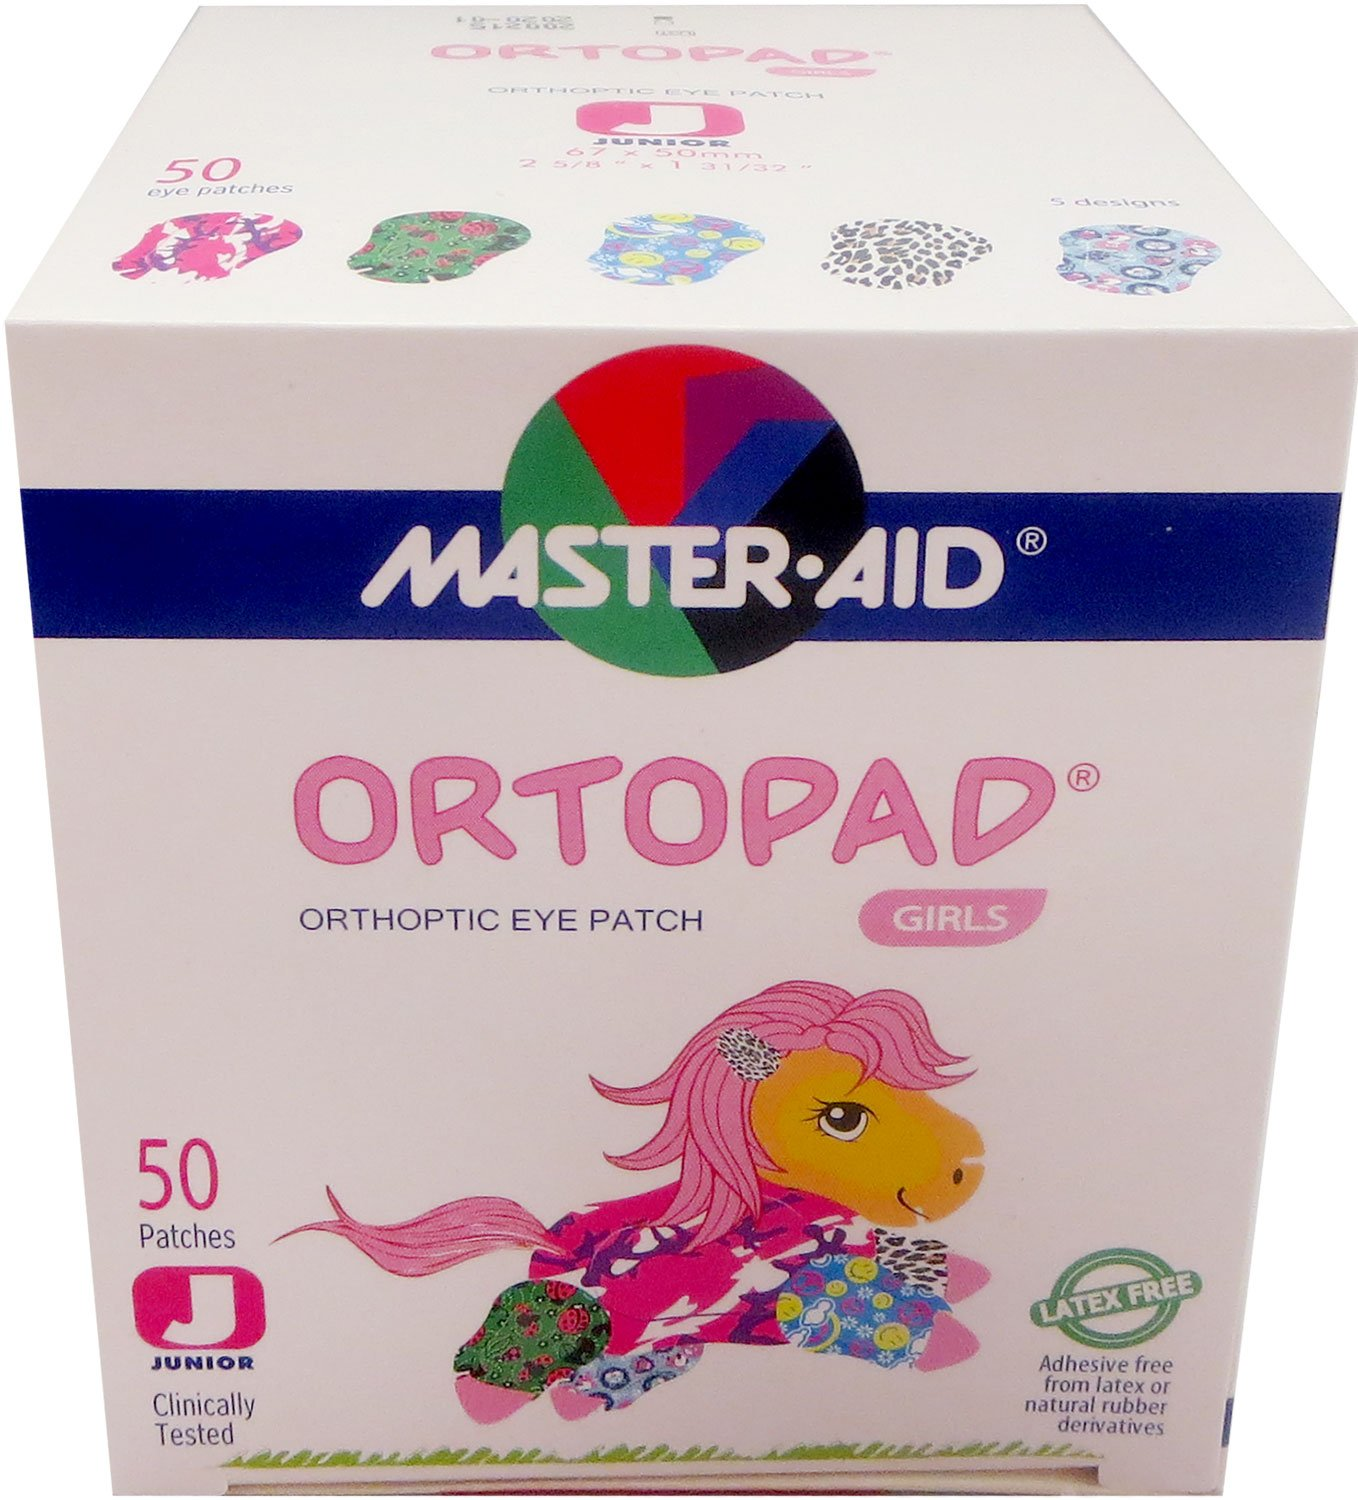 Ortopad Girls Eye Patches - Junior Size (50 Per Box): Amazon.es: Deportes y aire libre